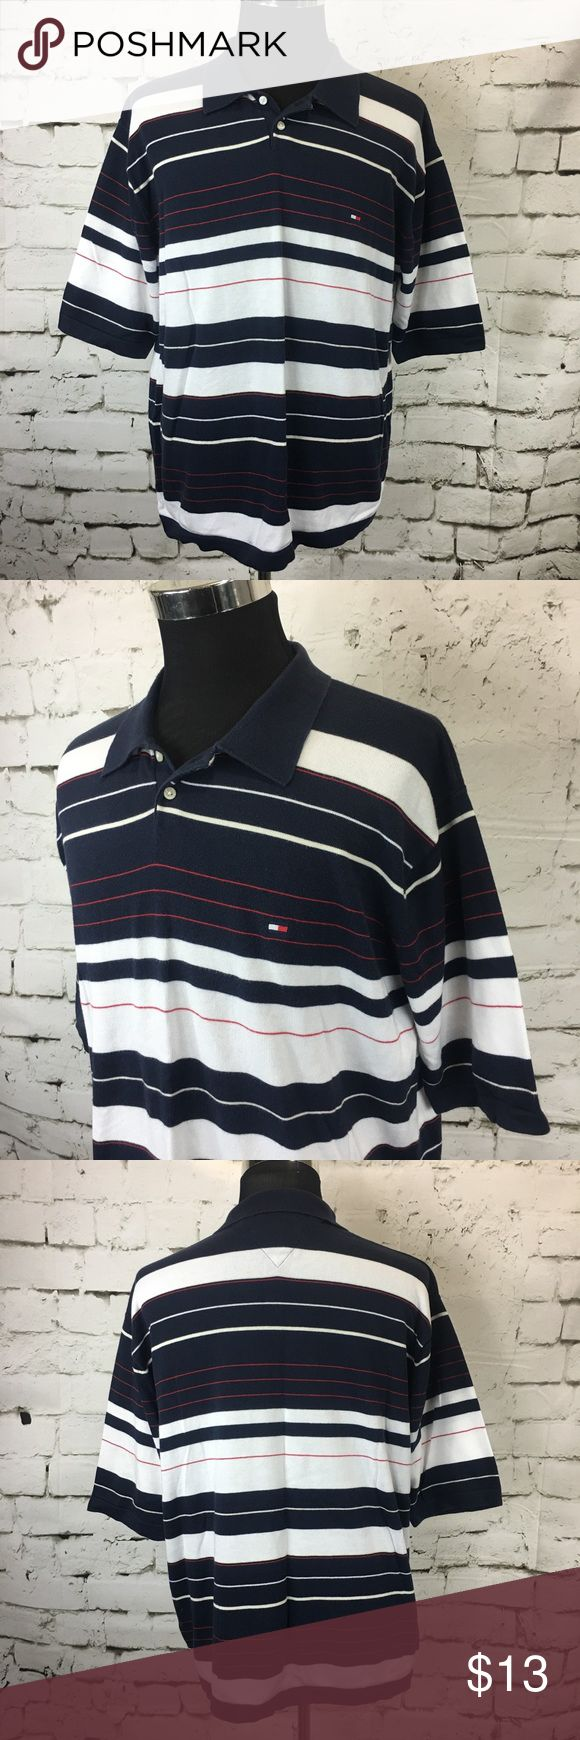 TOMMY HILFIGER Striped Cotton Polo Shirt VTG TOMMY HILFIGER Men's BLUE RED WHITE Striped Cotton Polo Shirt Size XXL  Nice Pre-Owned Condition, No Stains, No Holes 